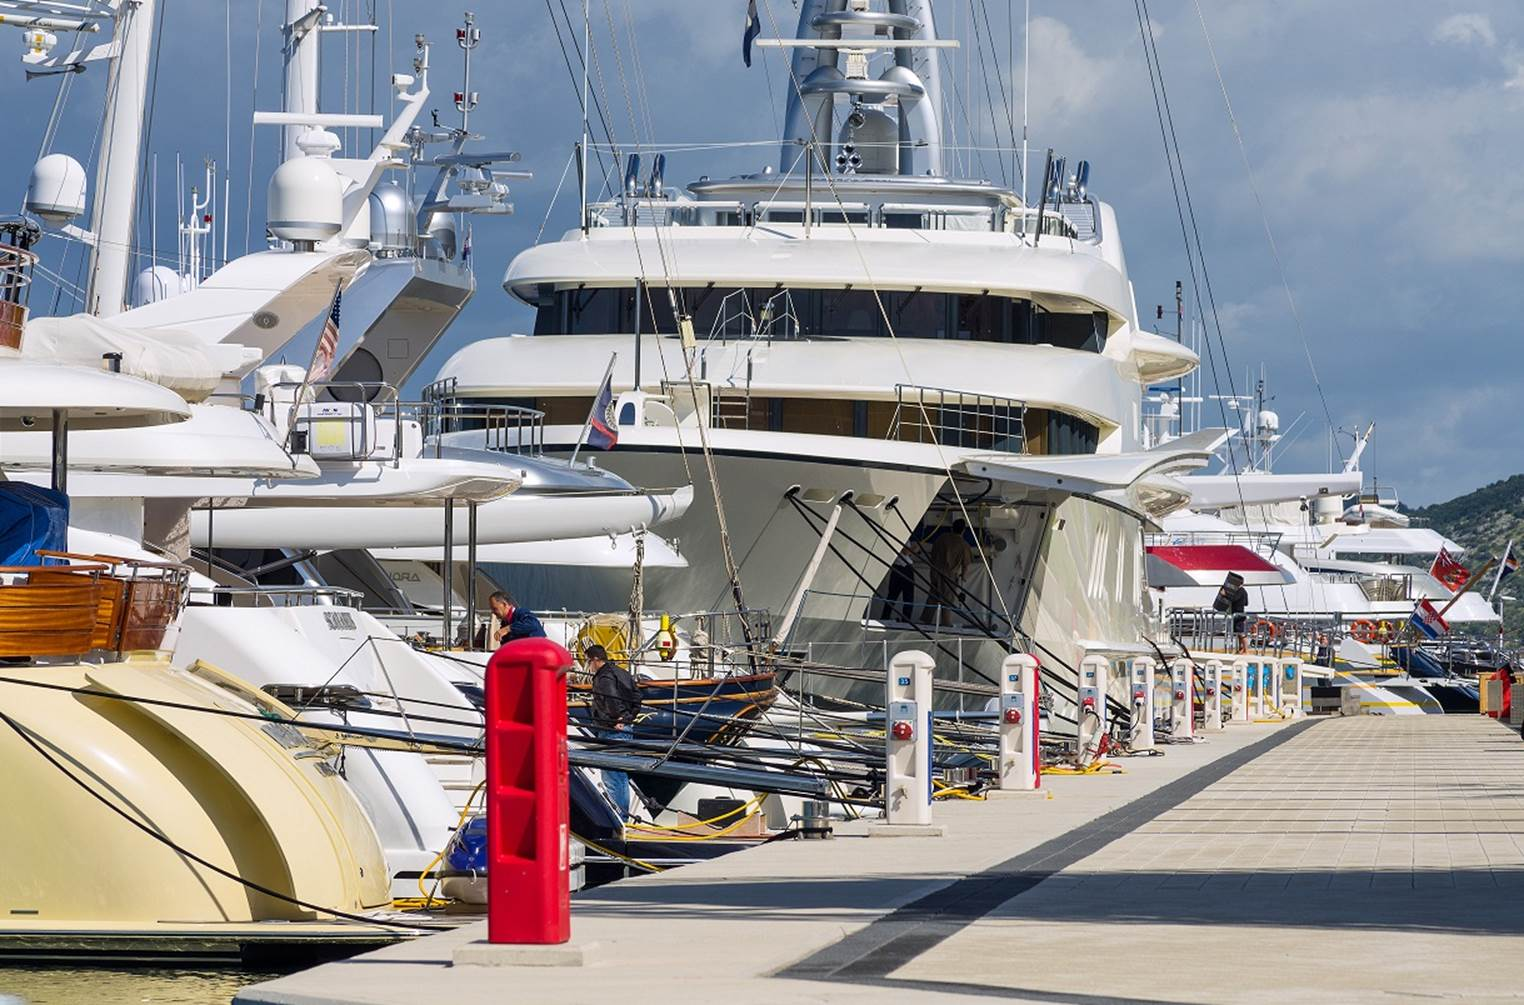 EBRD acquires 25% stake in D Marinas B.V. for 70 mln euro